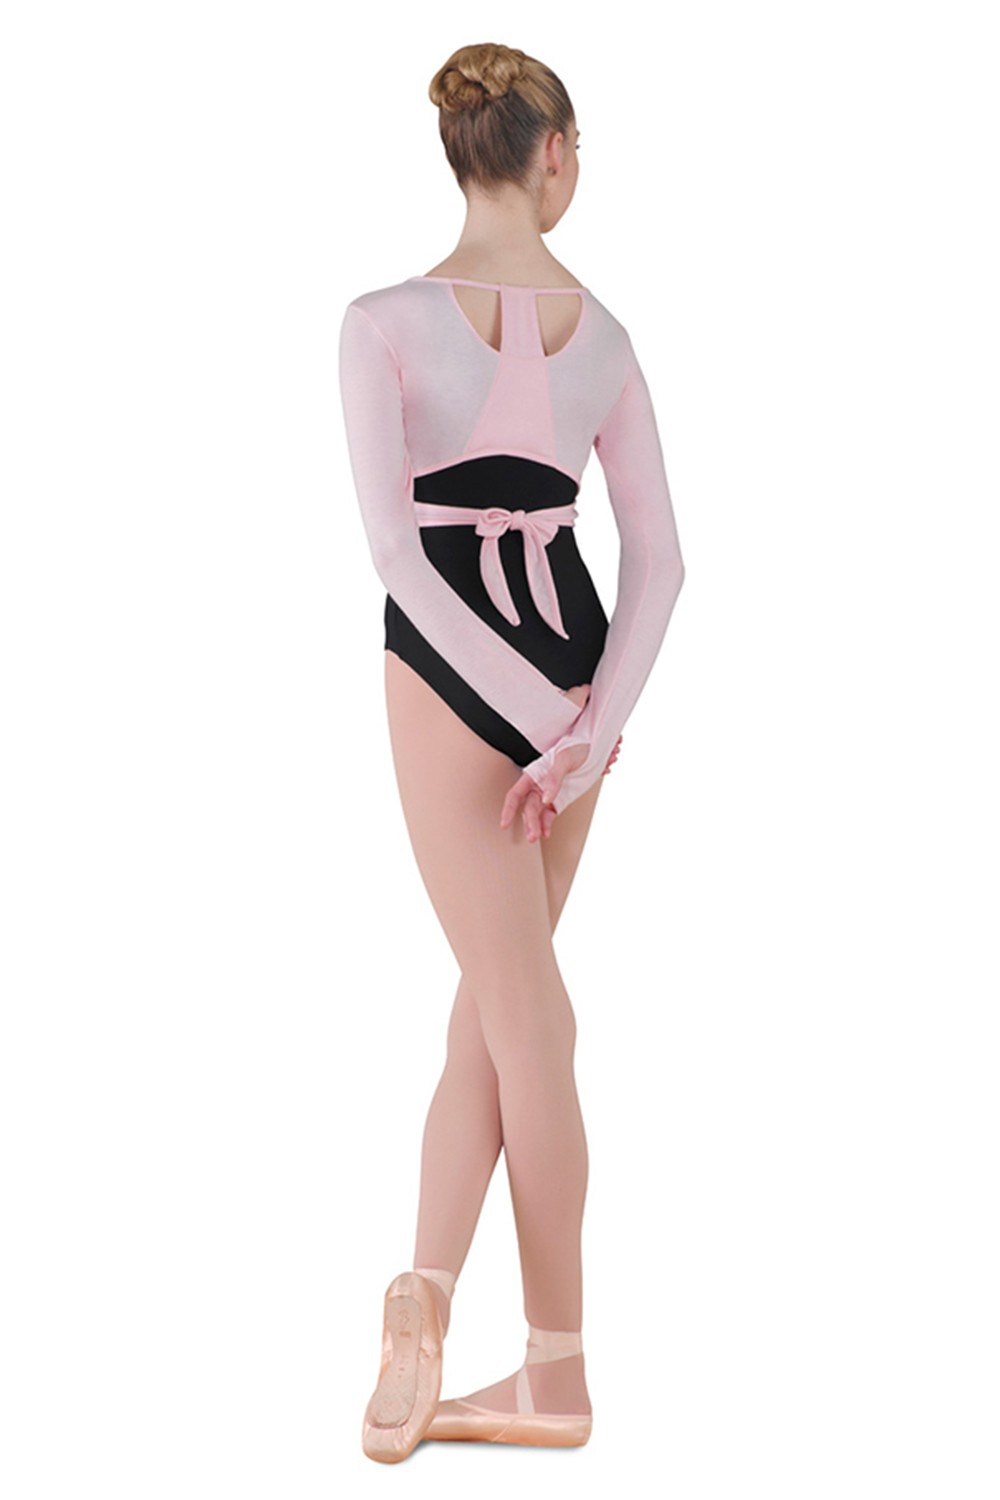 Long Sleeve Jersey Wrap Top Women's Dance Tops